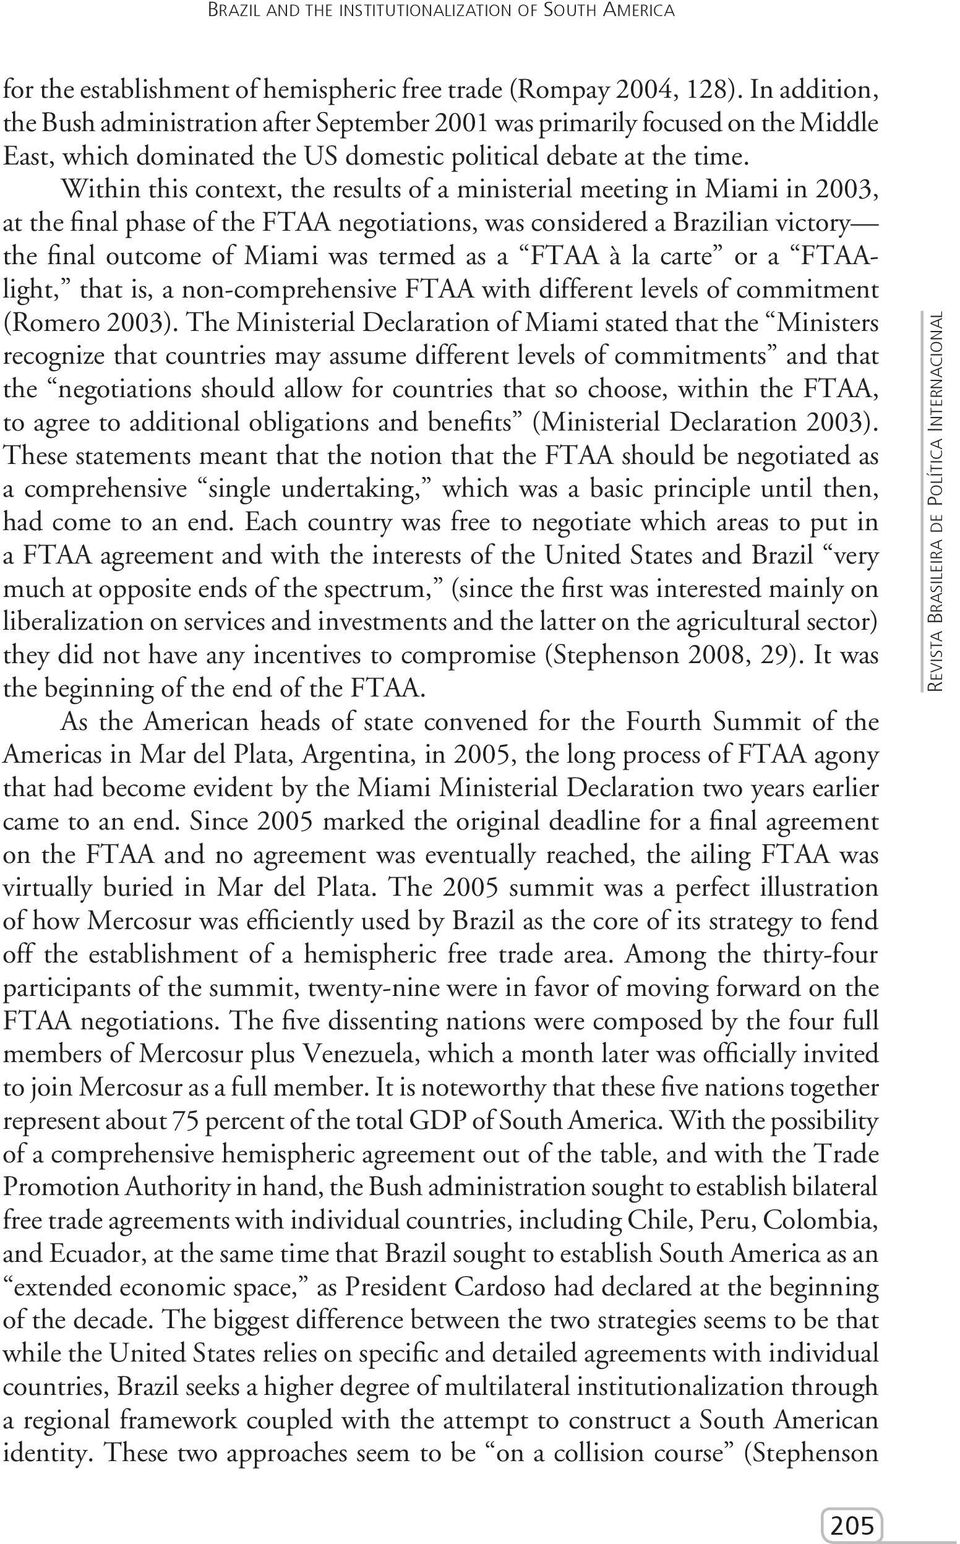 Within this context, the results of a ministerial meeting in Miami in 2003, at the final phase of the FTAA negotiations, was considered a Brazilian victory the final outcome of Miami was termed as a